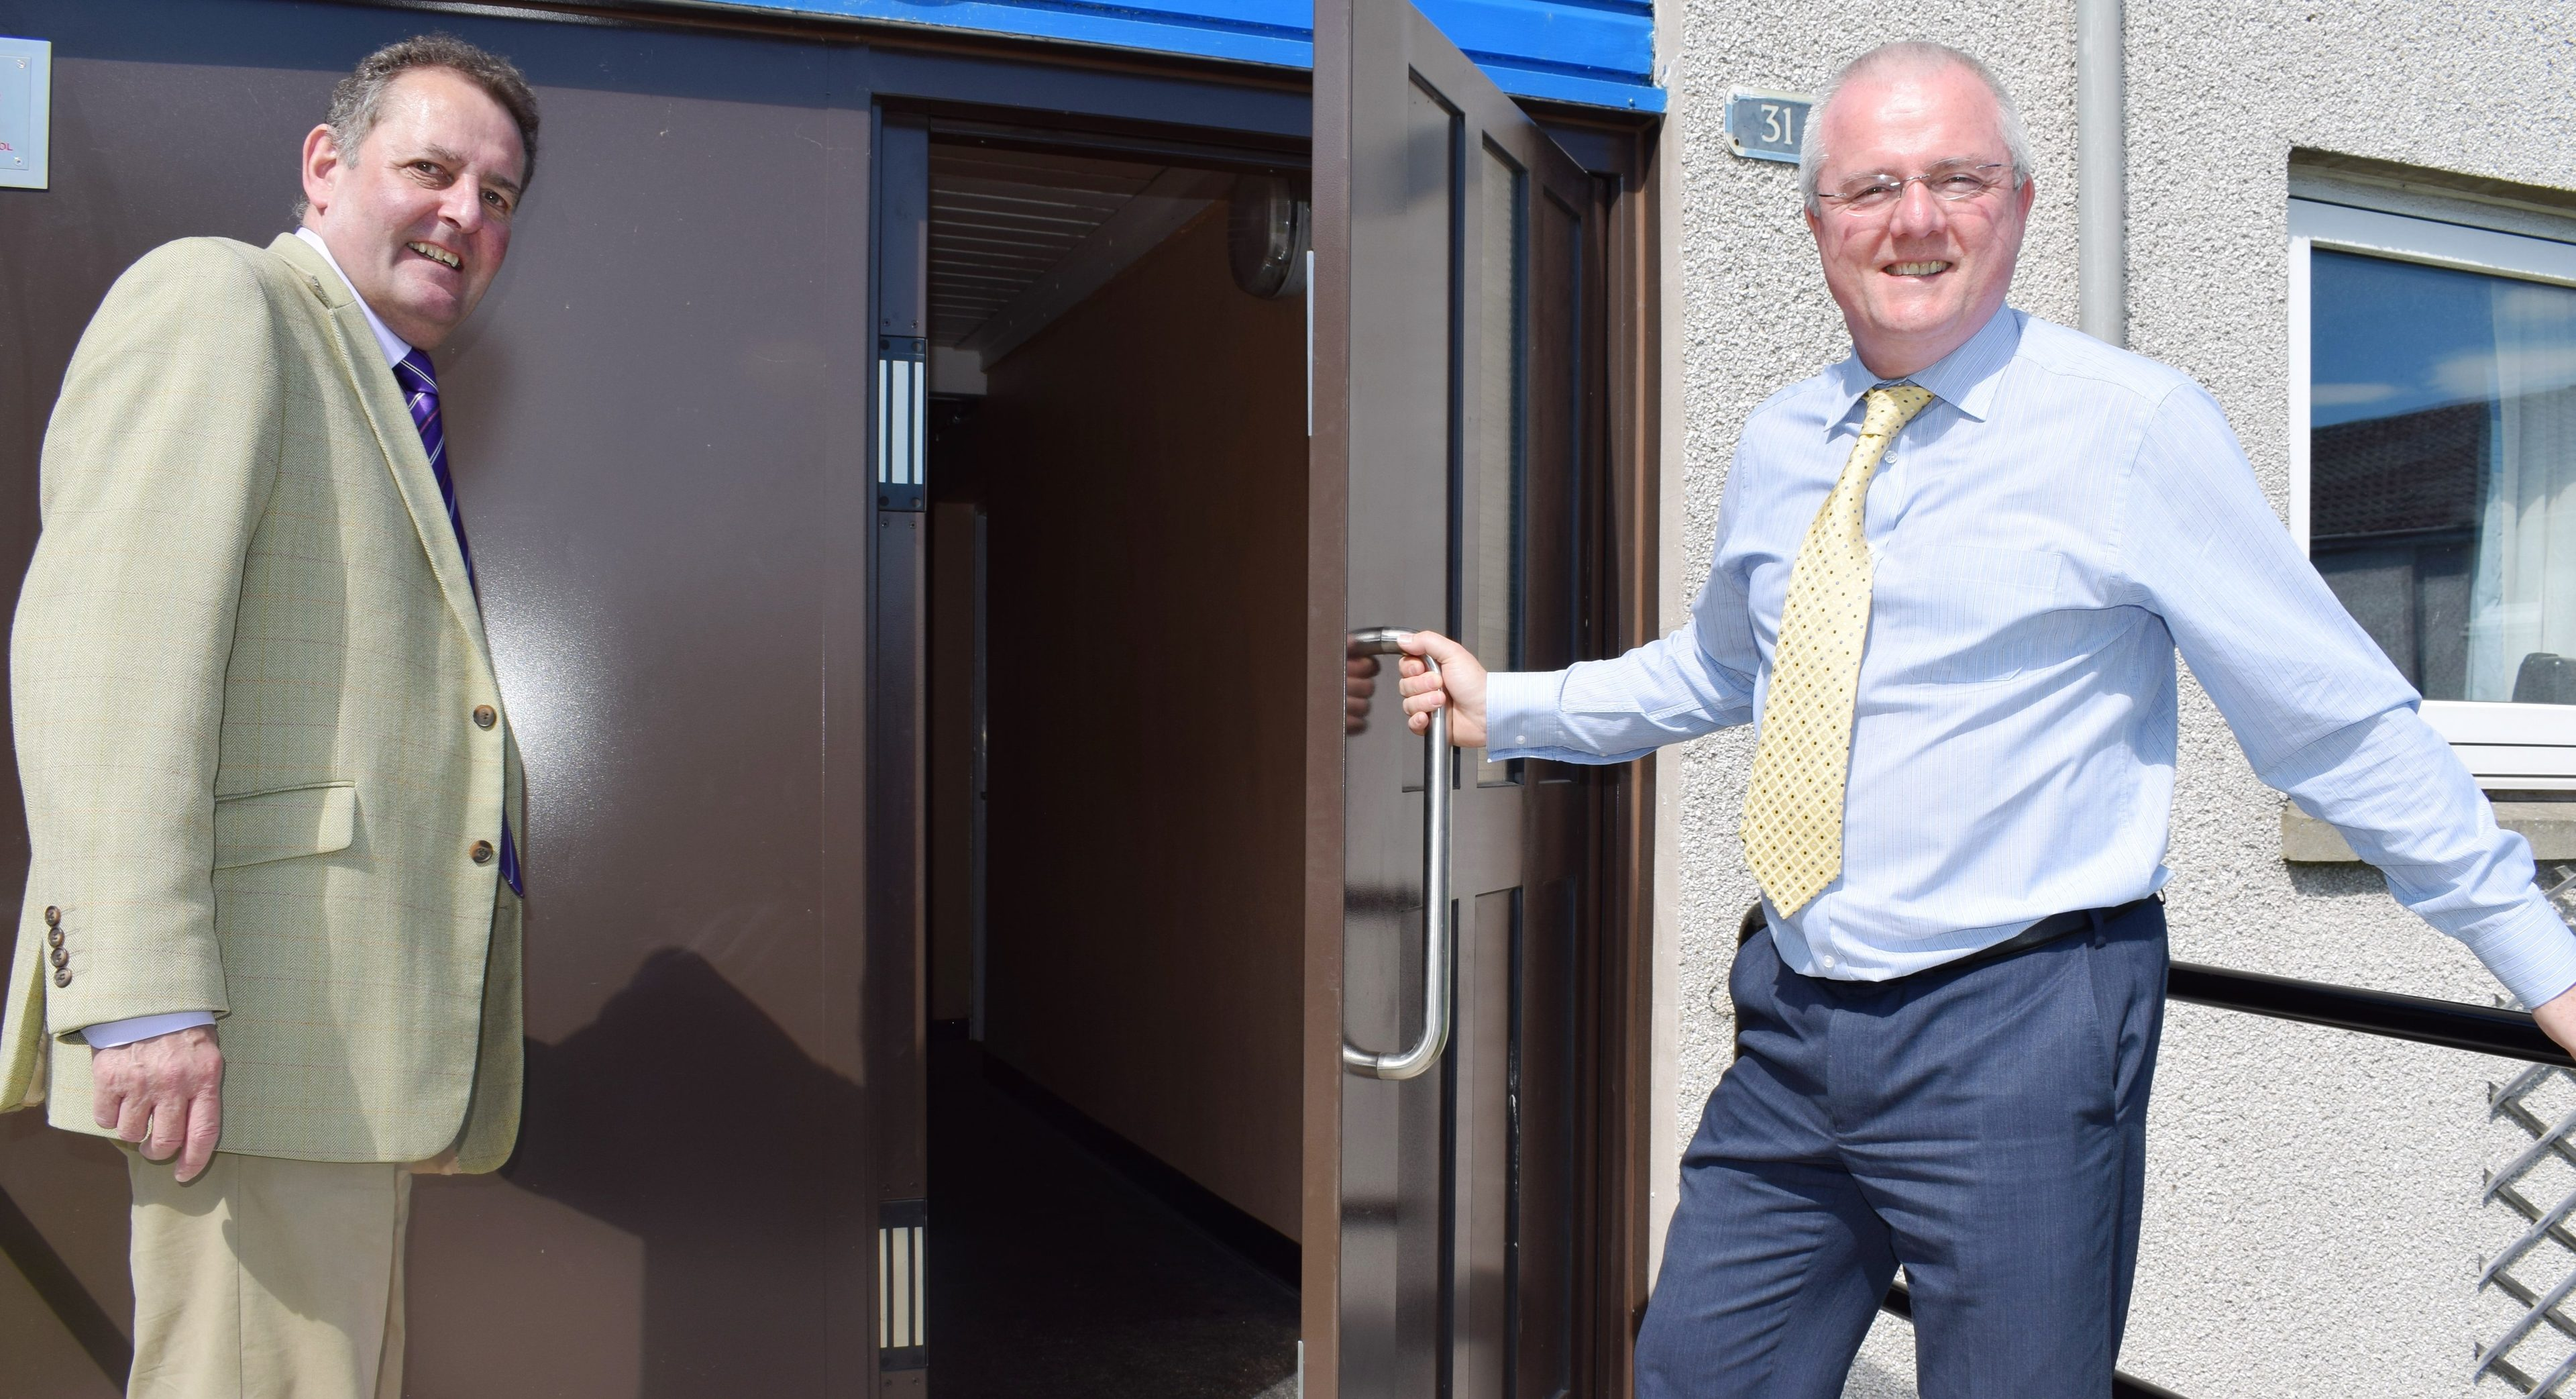 Councillors Harry Coates and Peter Barrett at a secure-door entry system in Perth.